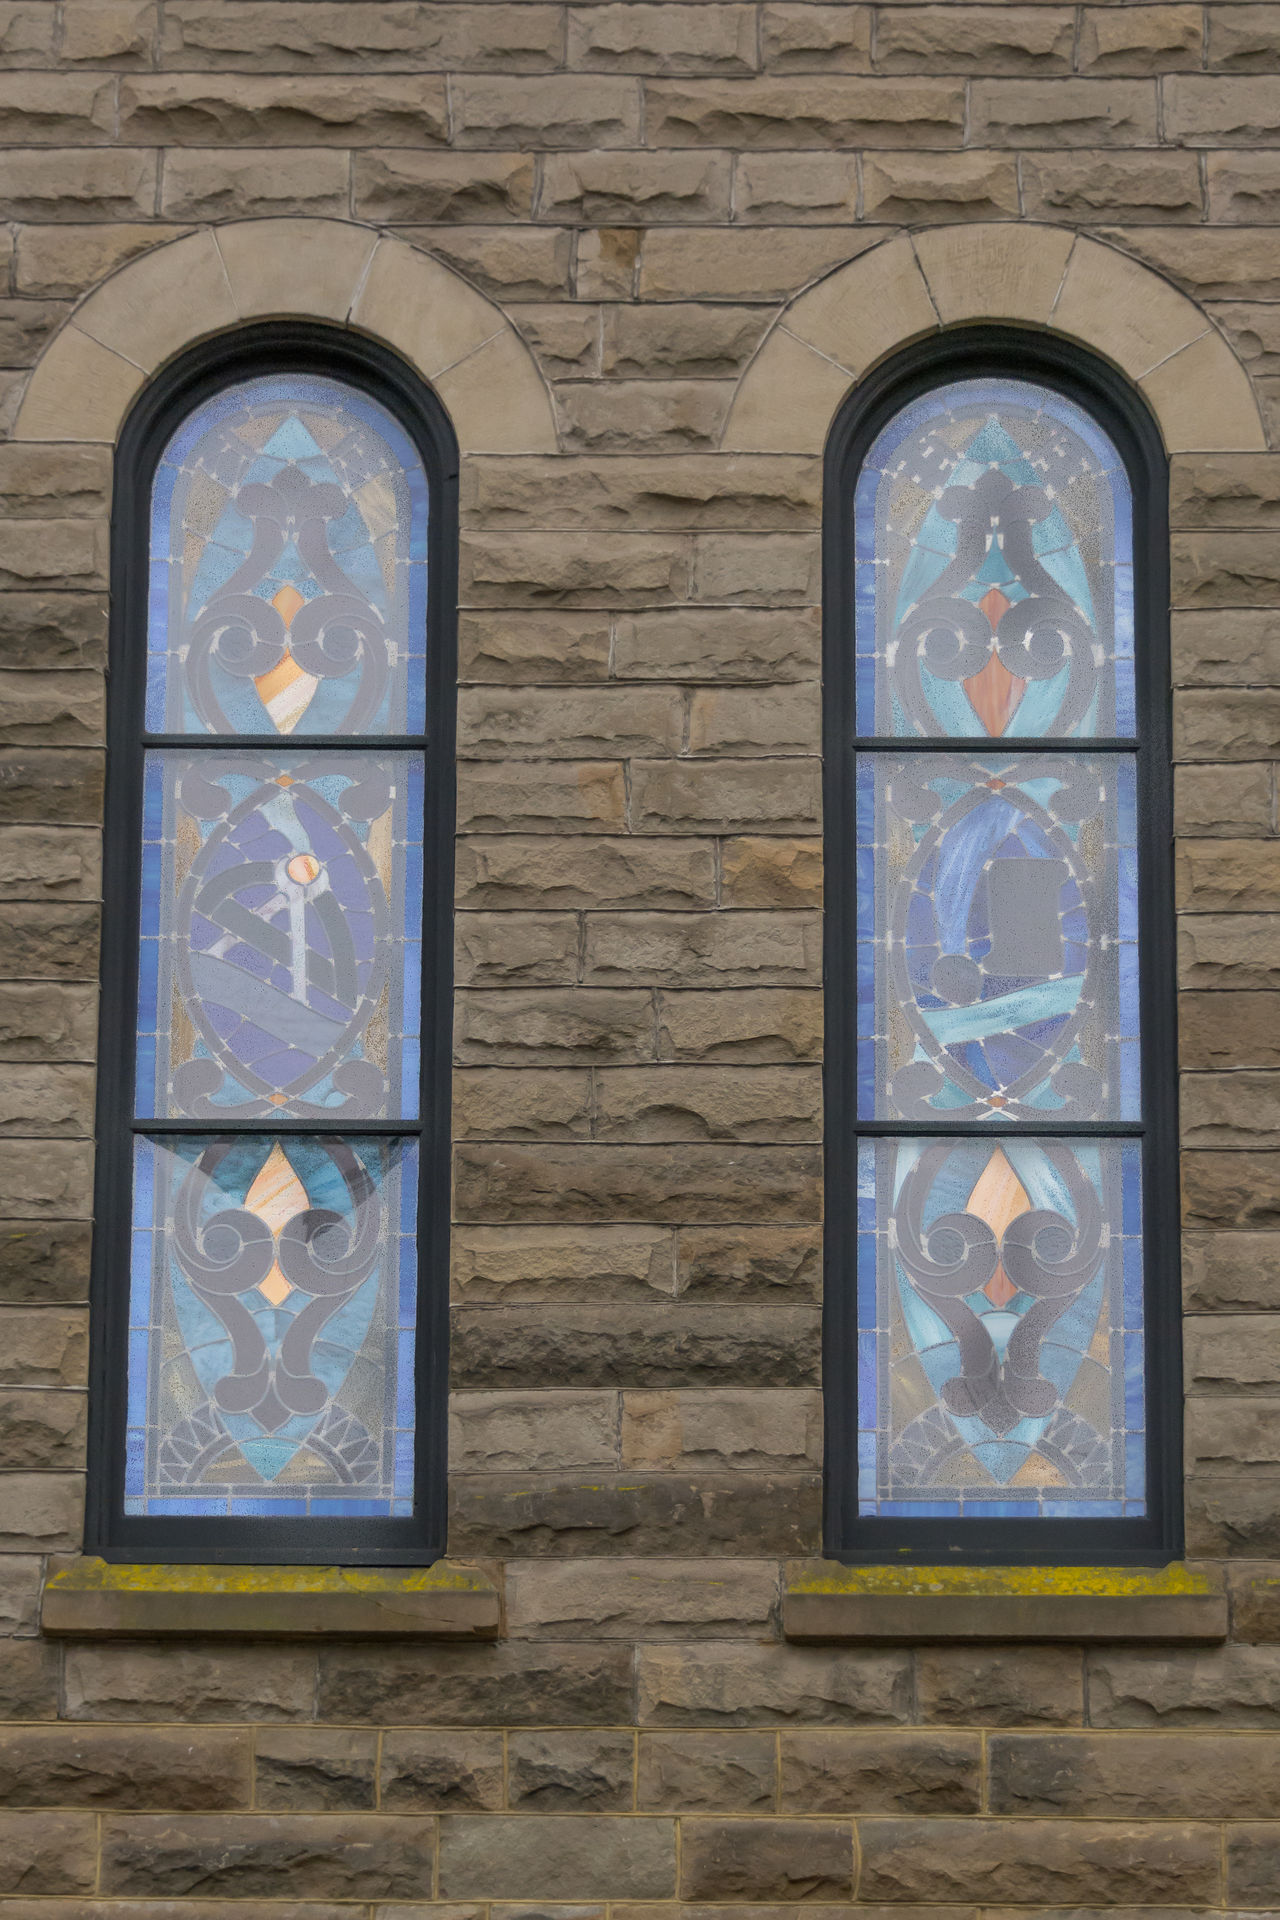 Architecture Brick Wall Building Exterior Built Structure Church Window Close-up Day No People Outdoors Stained Glass Window